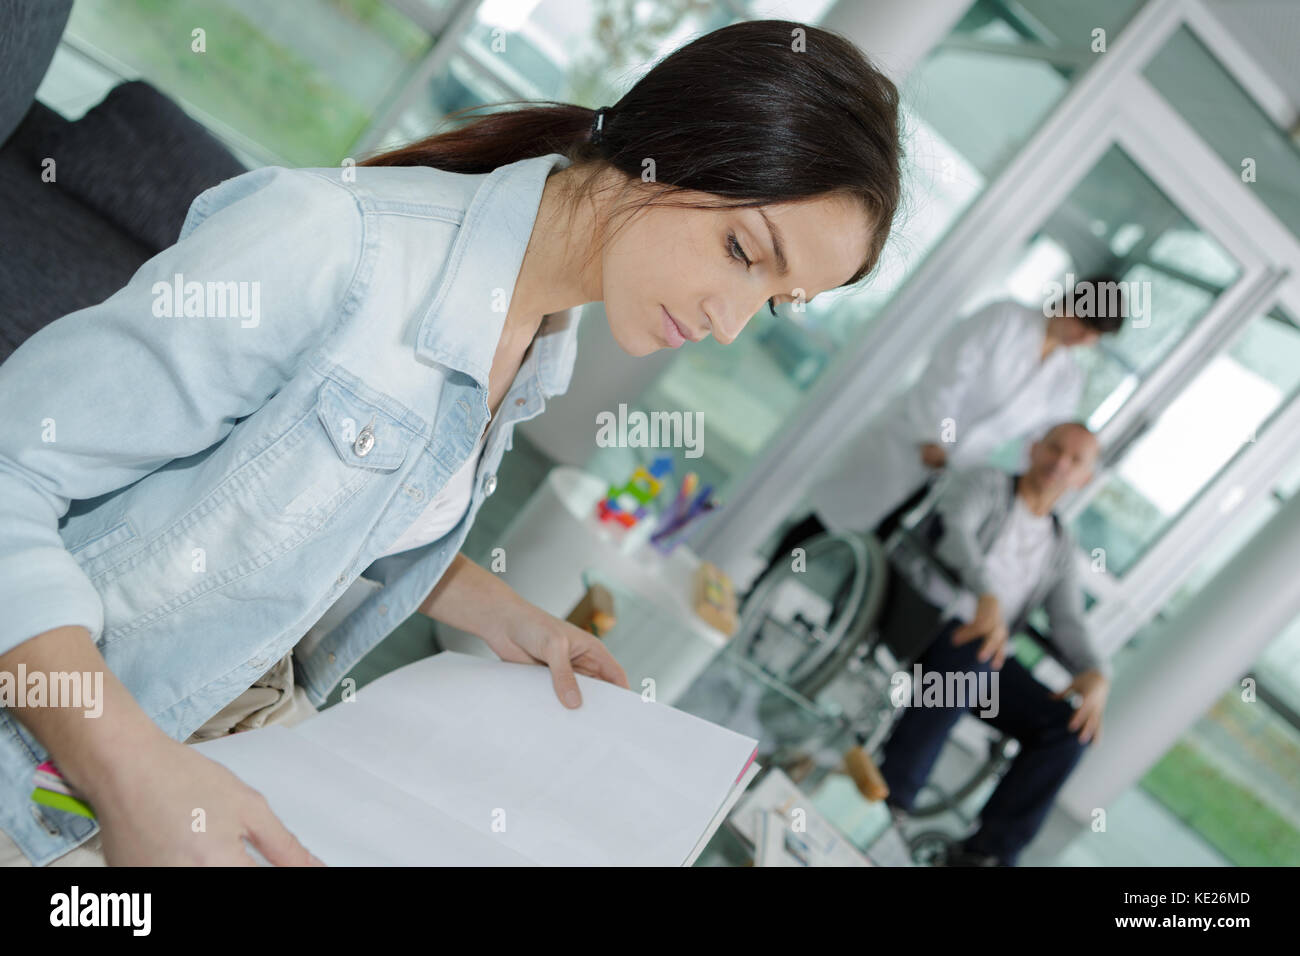 Receptionist Medical Clinic Patient Holding Stockfotos ...